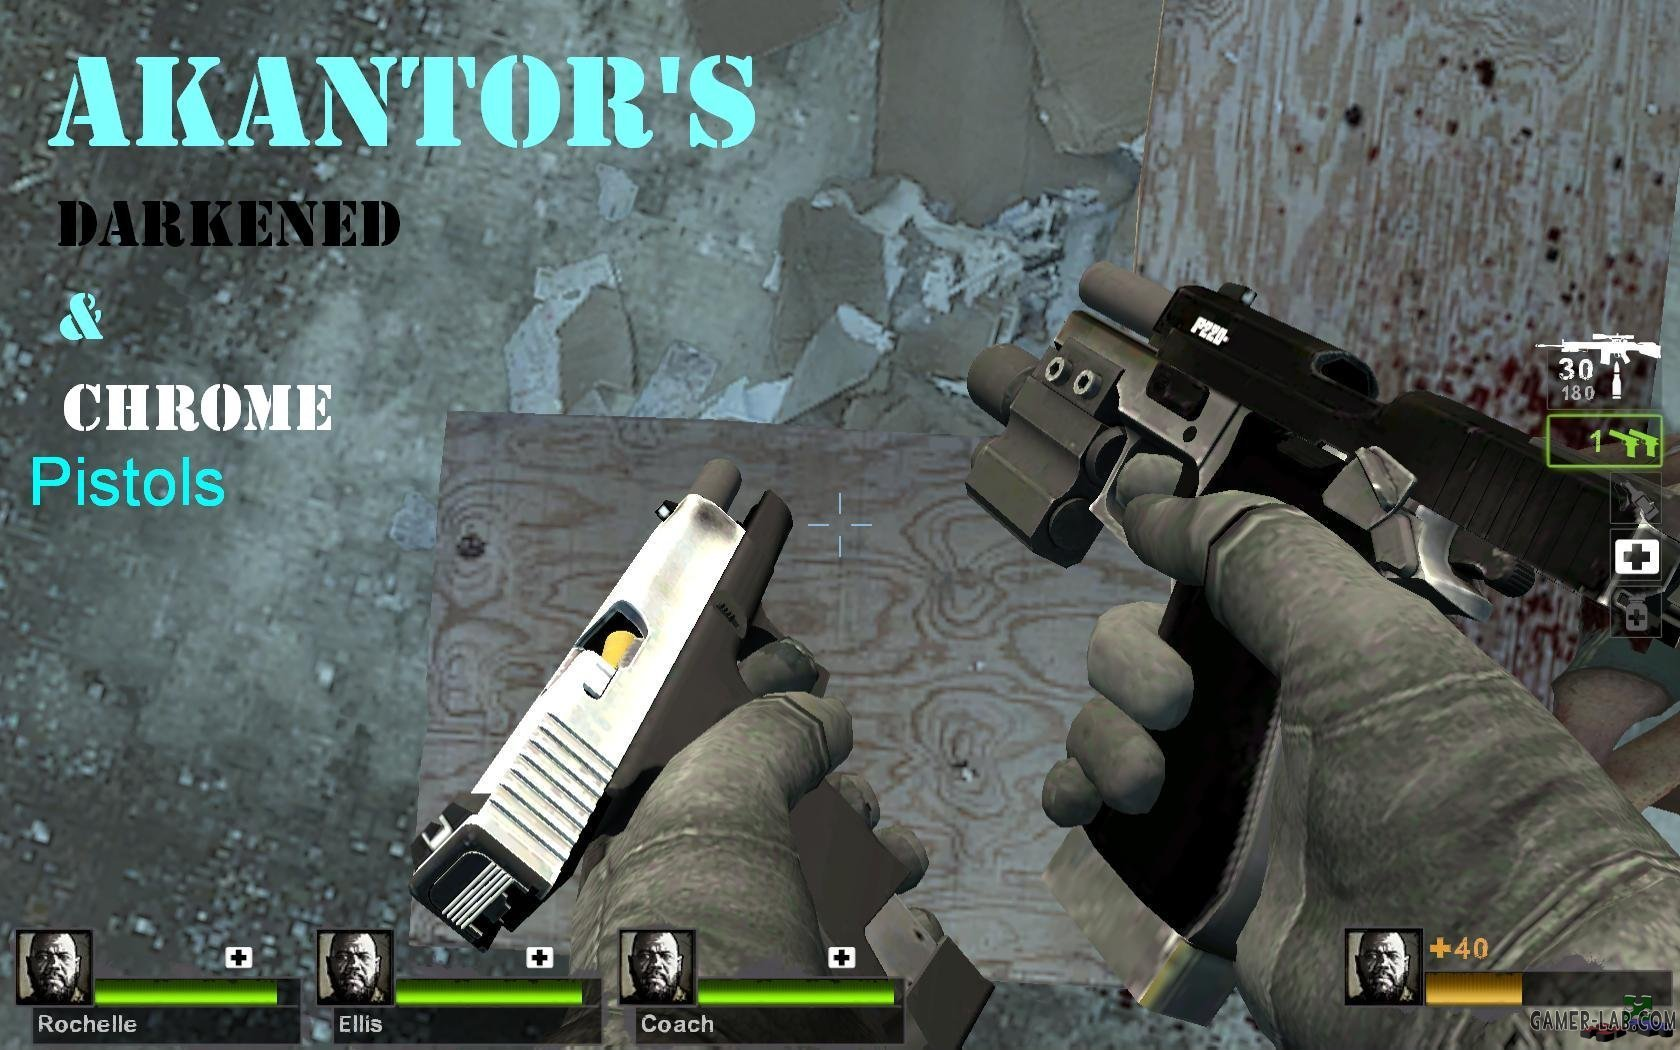 Akantor_s_Darkened__Chrome_Pistols_V2